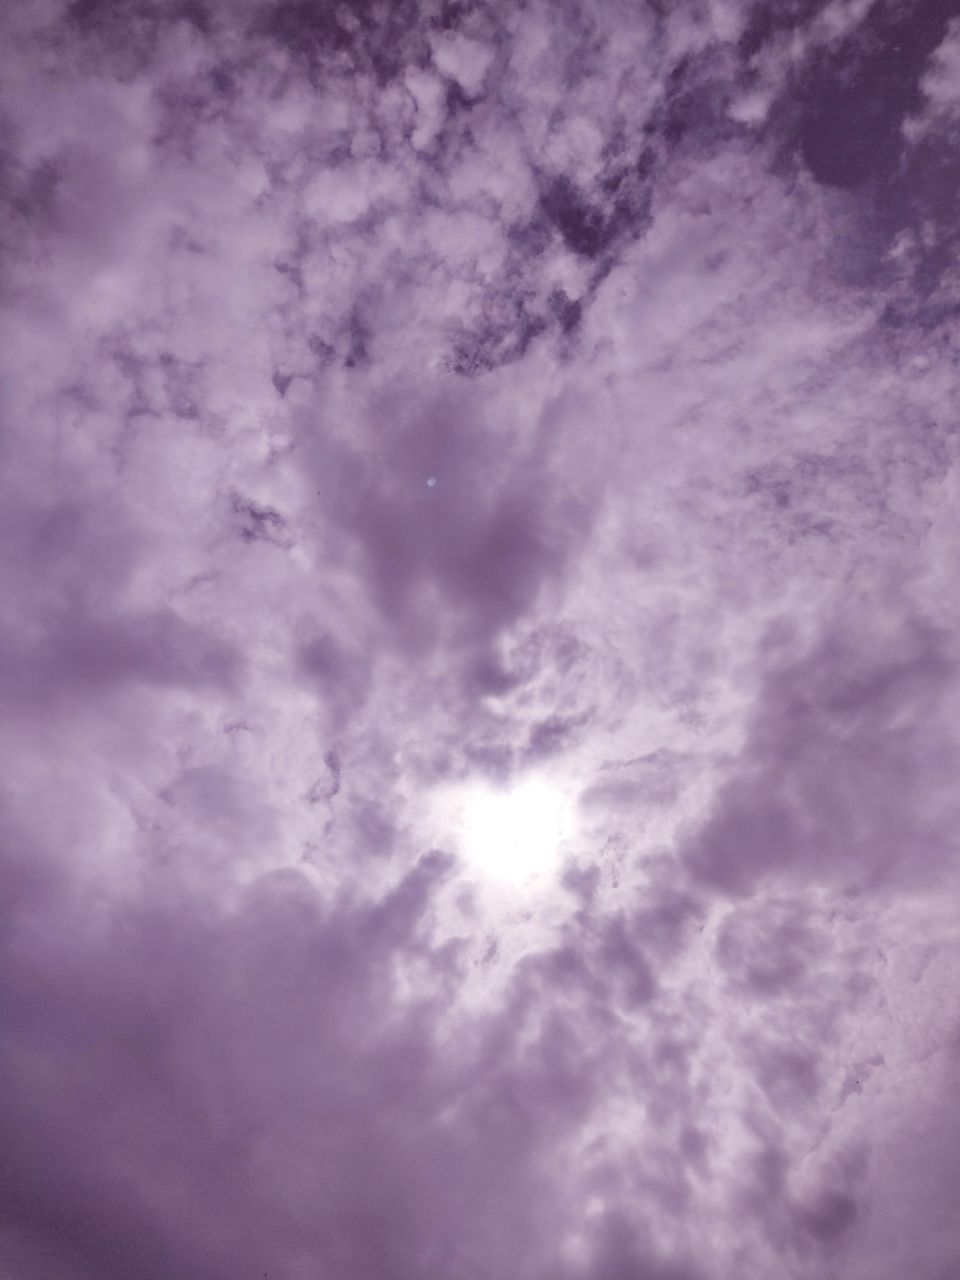 cloud - sky, sky, beauty in nature, low angle view, scenics - nature, nature, tranquility, no people, tranquil scene, outdoors, backgrounds, cloudscape, dramatic sky, idyllic, full frame, storm, day, overcast, moody sky, purple, meteorology